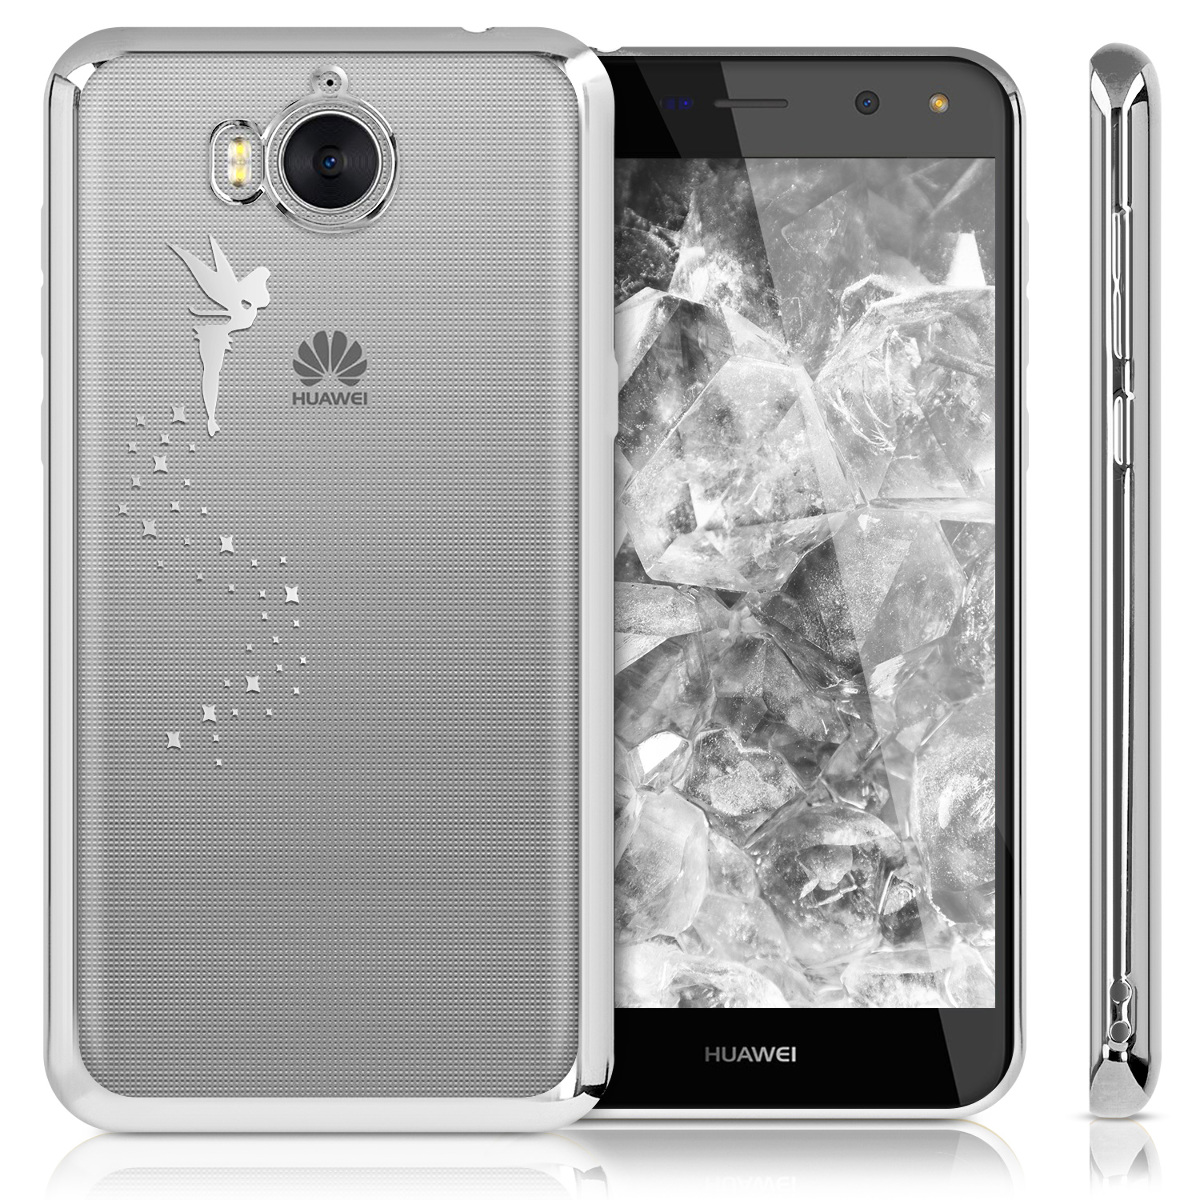 TPU Crystal Case for Huawei Y6 (2017) with Galvanized Frame | eBay